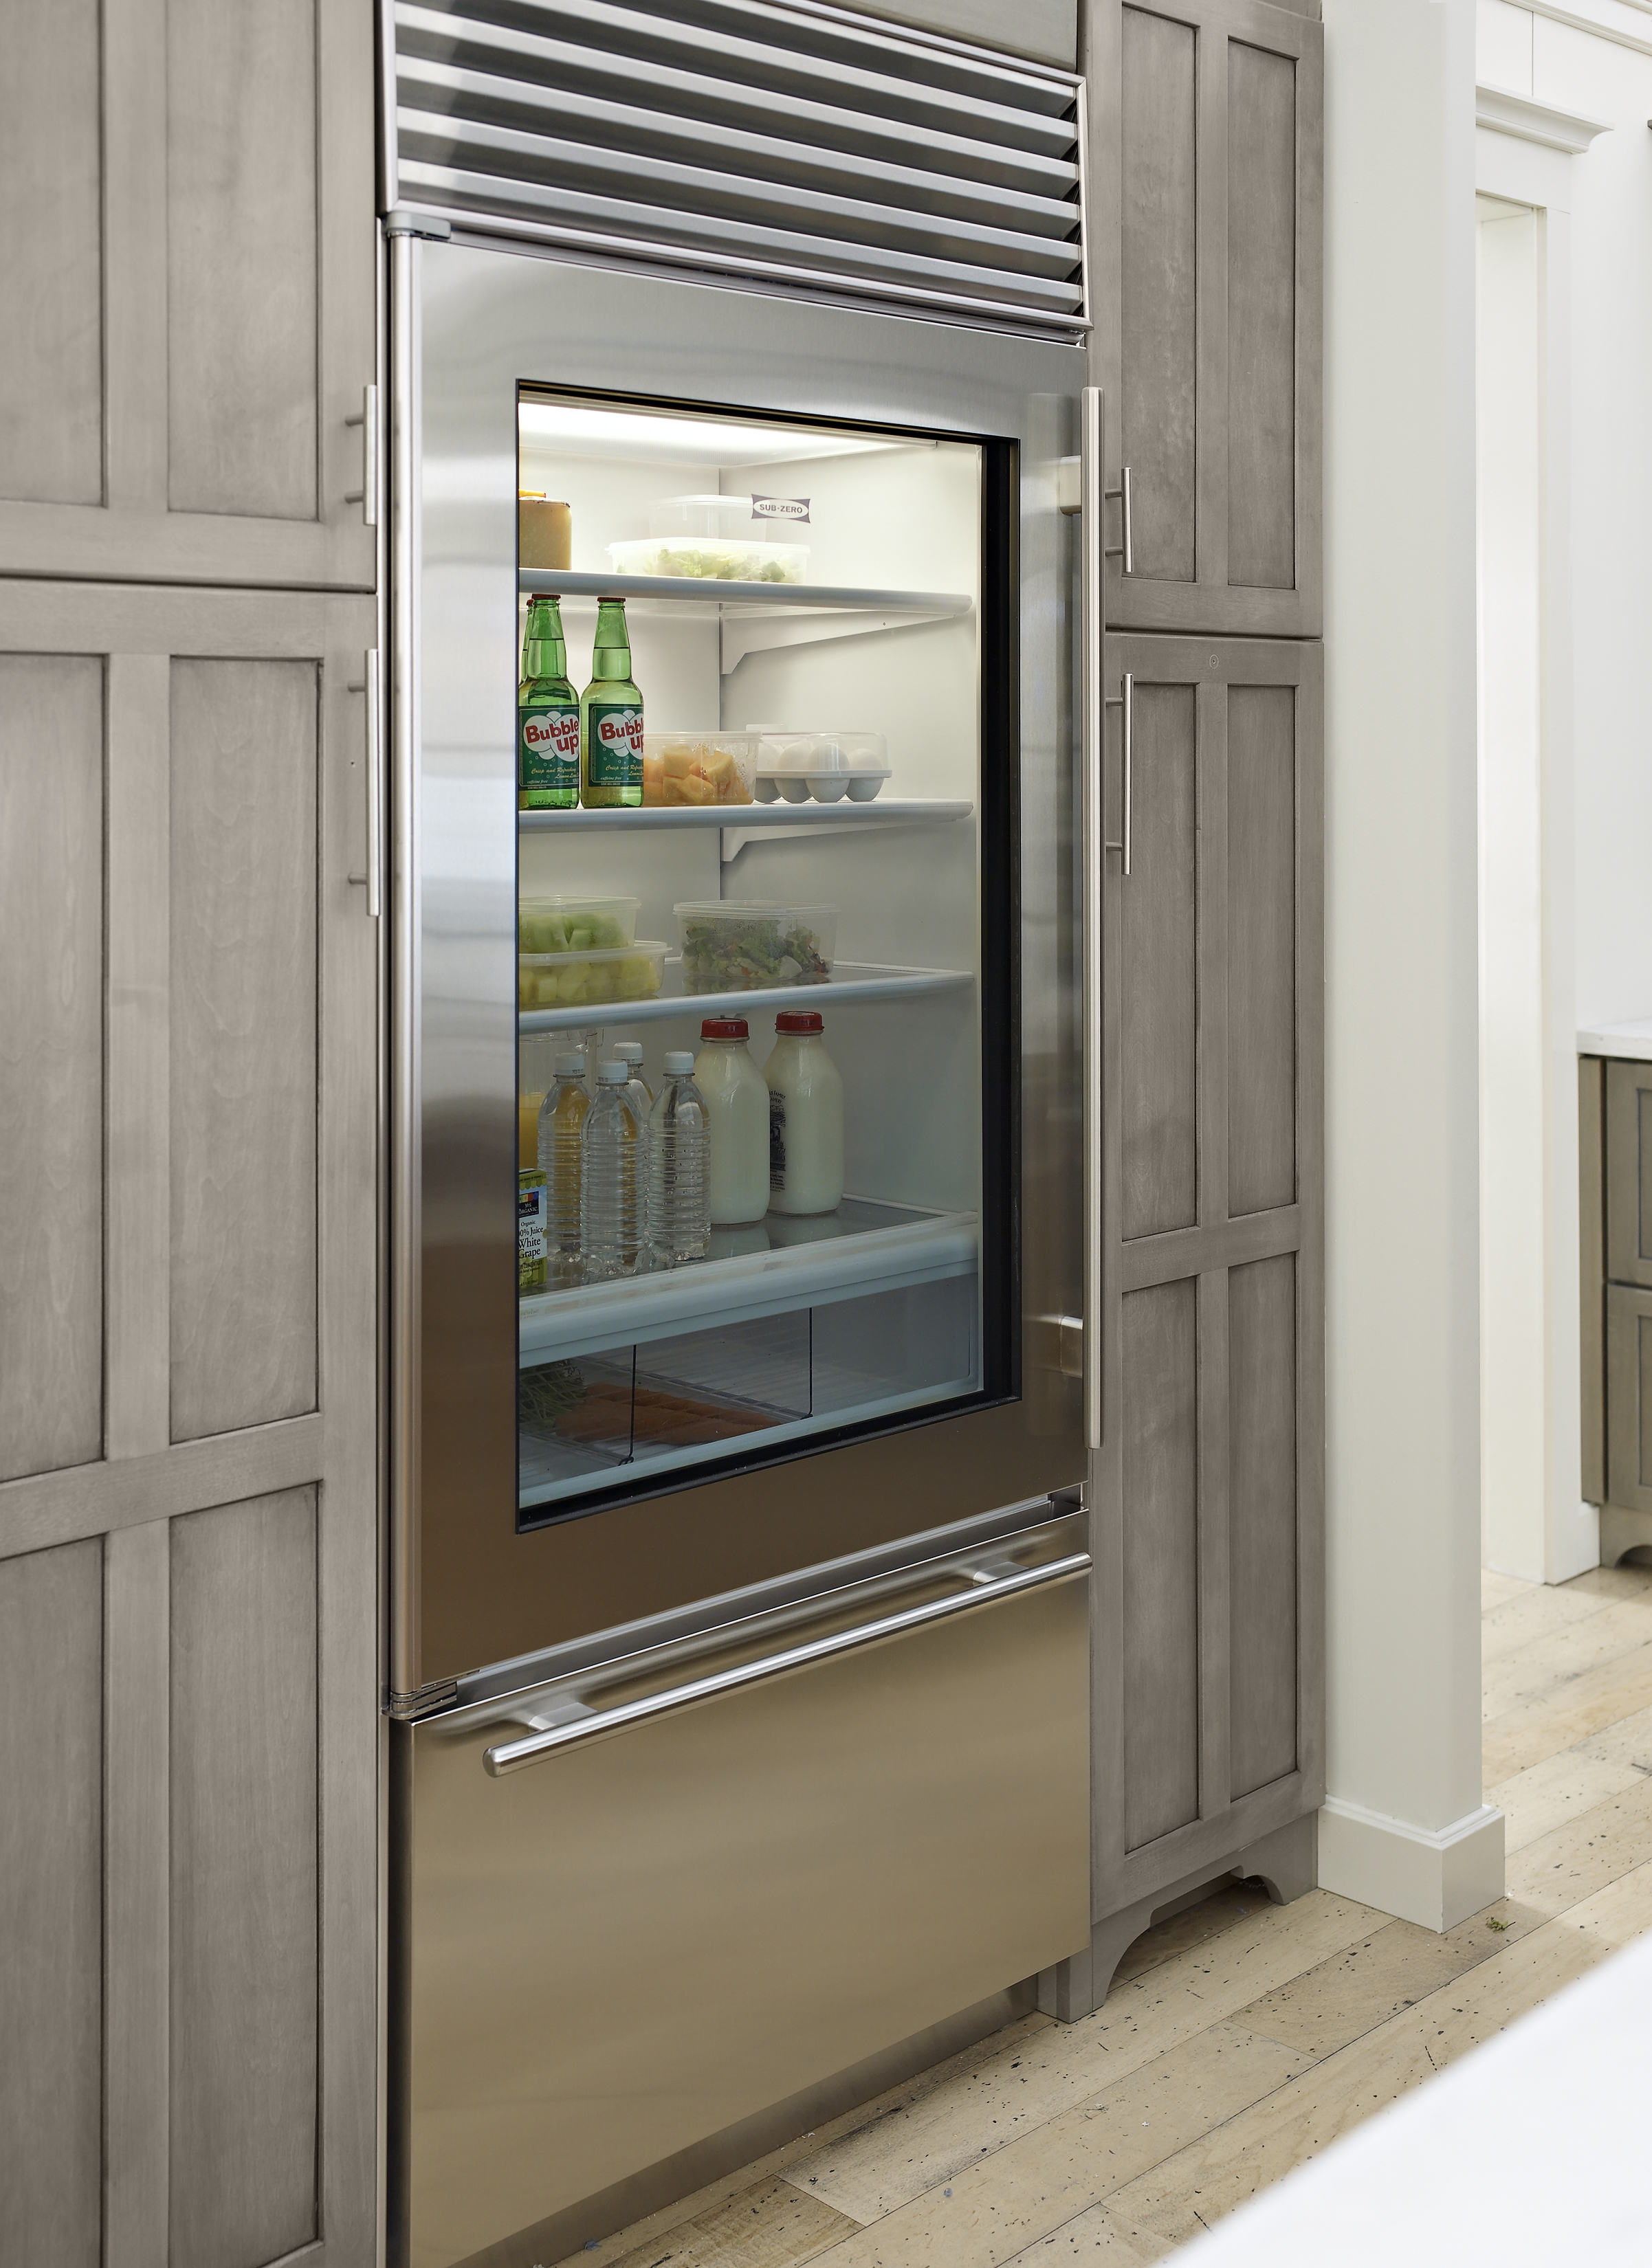 Stainless steel fridge fitted between wooden cabinetry along the kitchen wall